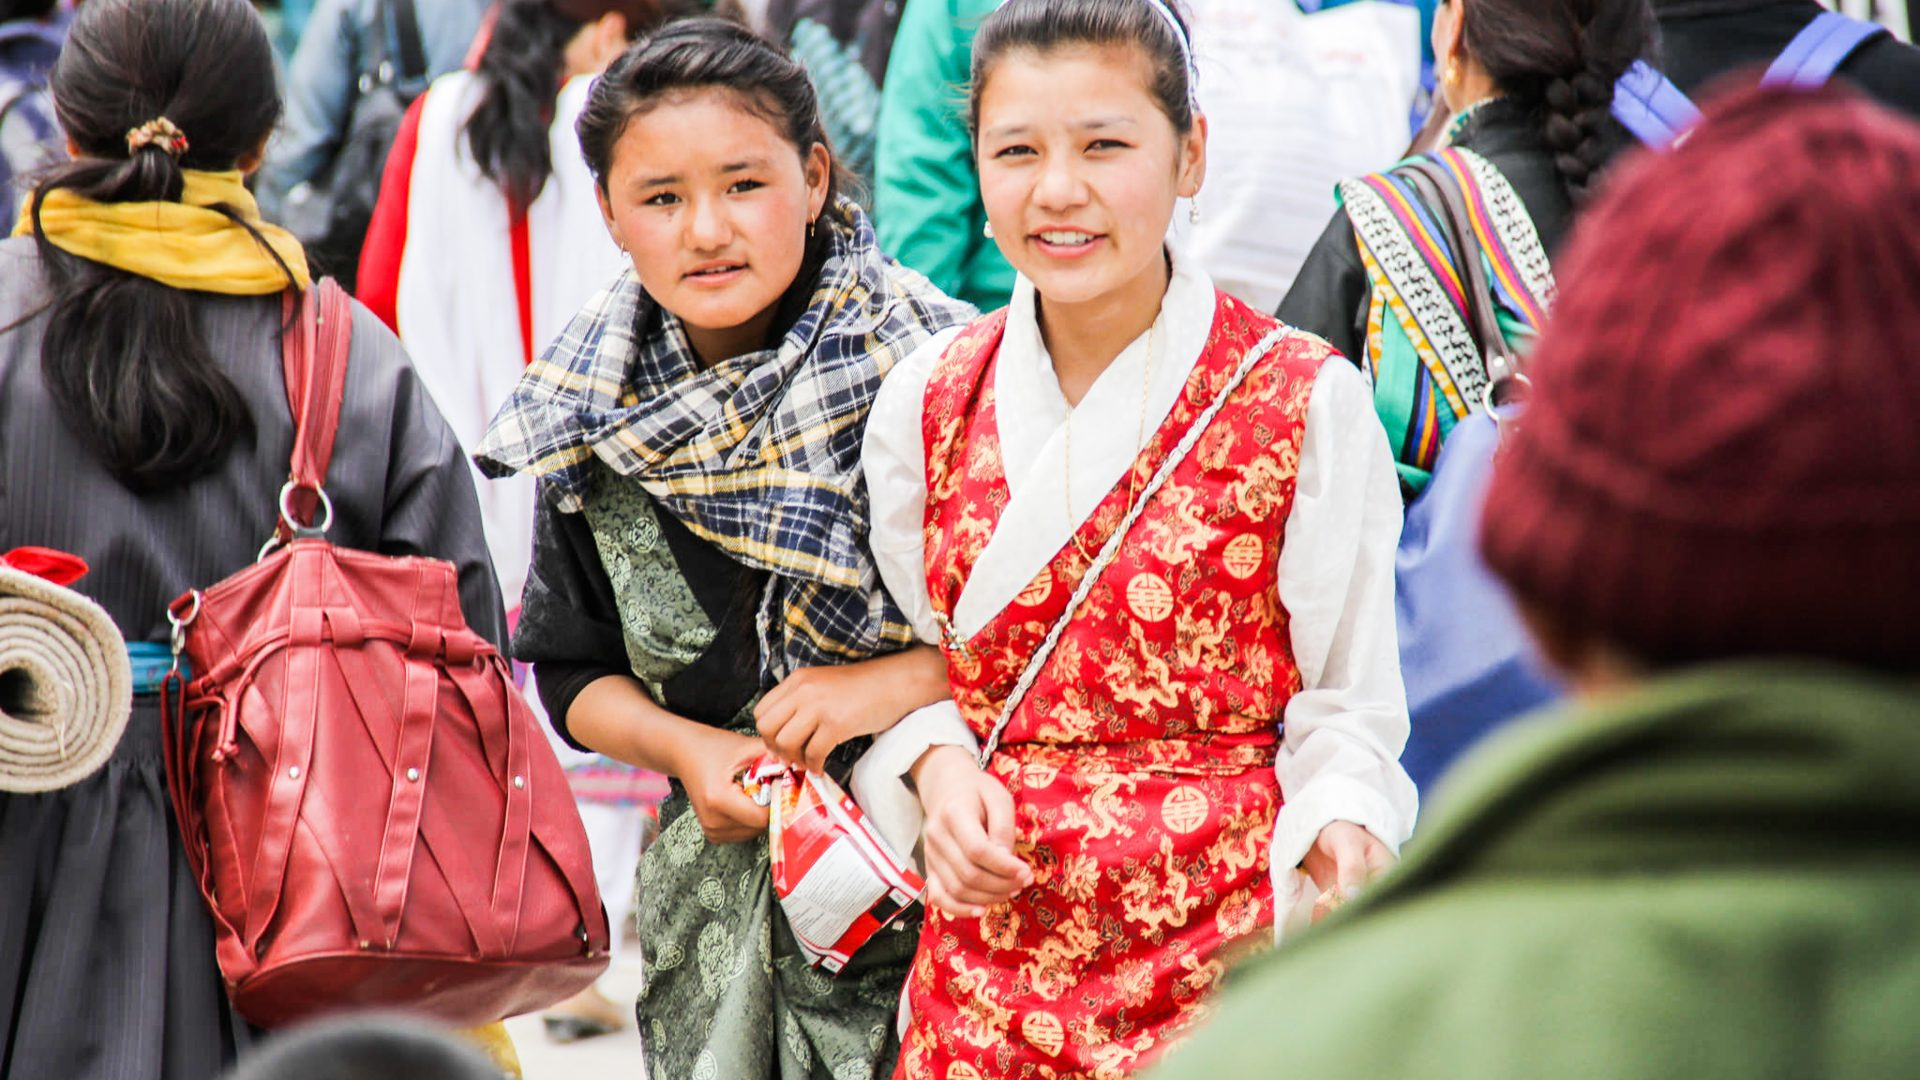 Young girls at the Buddhist festival in Ladakh in the Himalayas